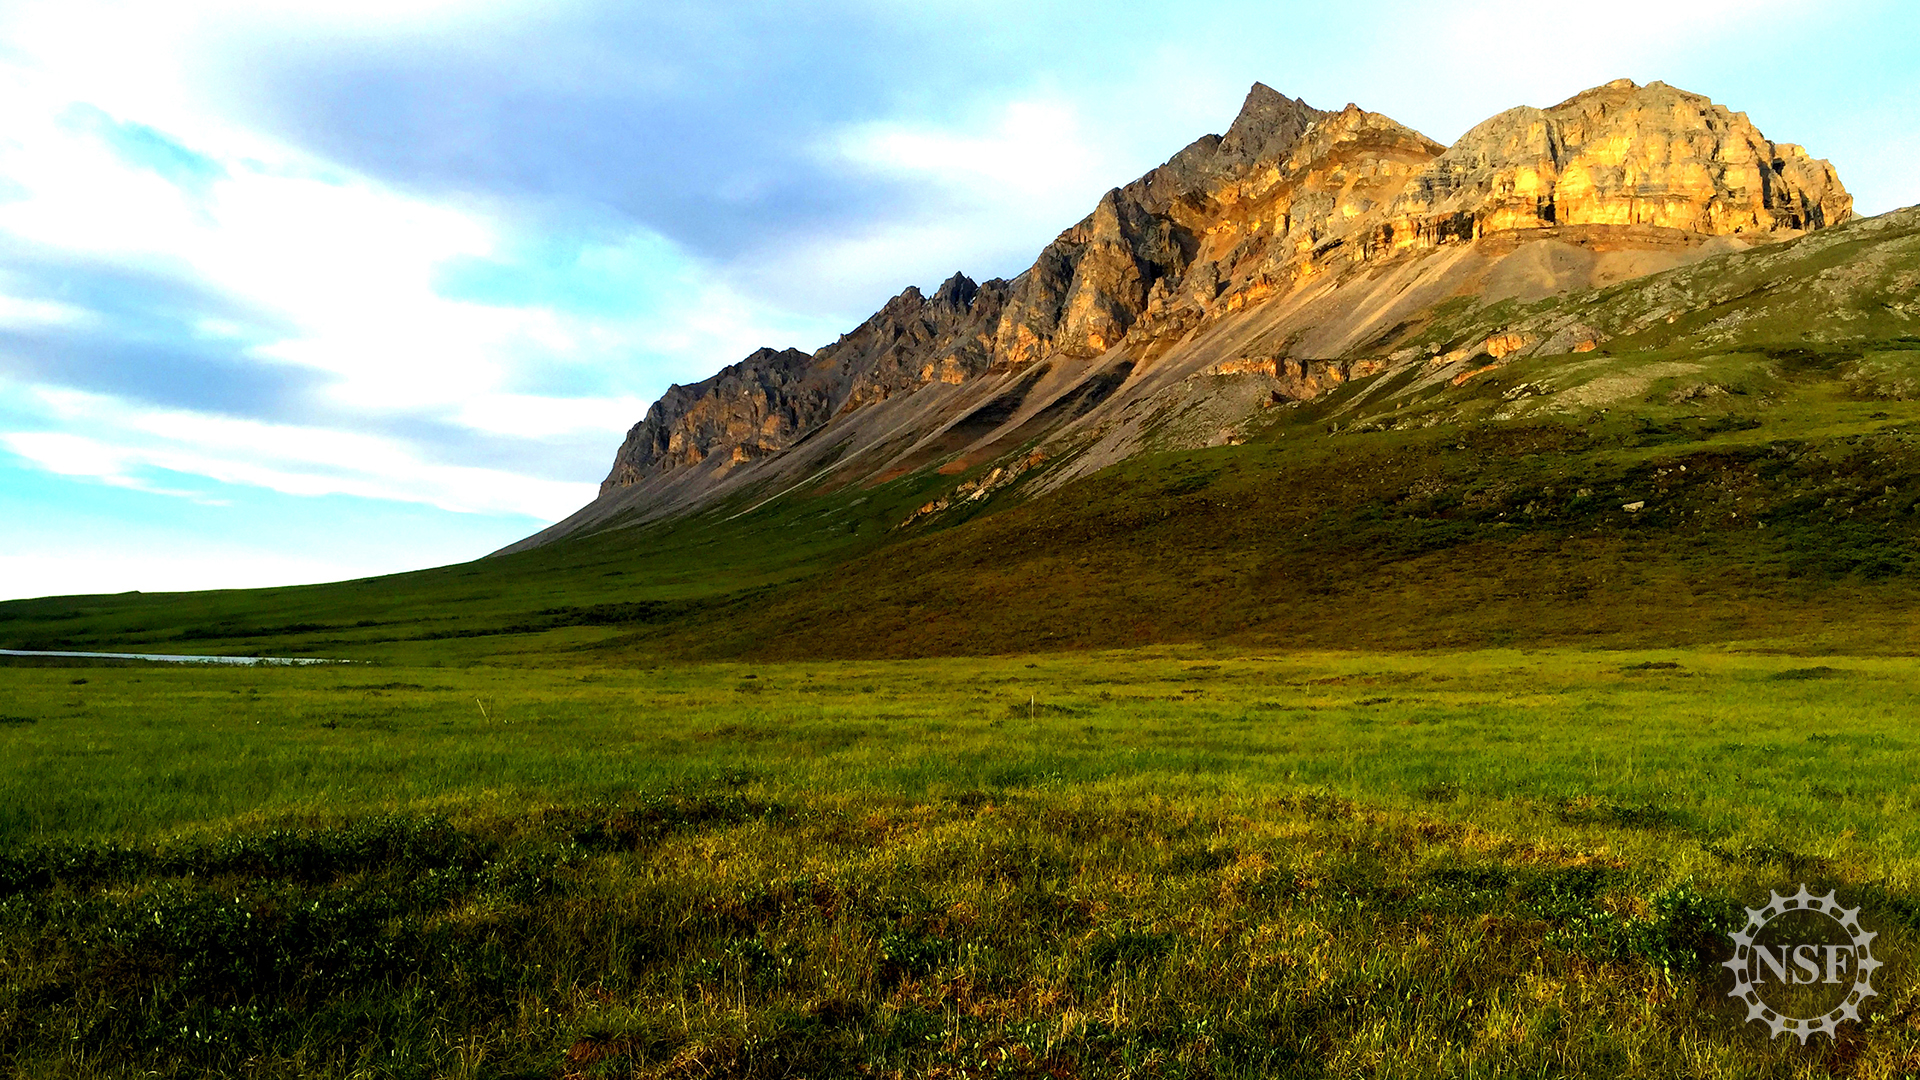 A rocky outcrop rises over the Alaskan tundra.